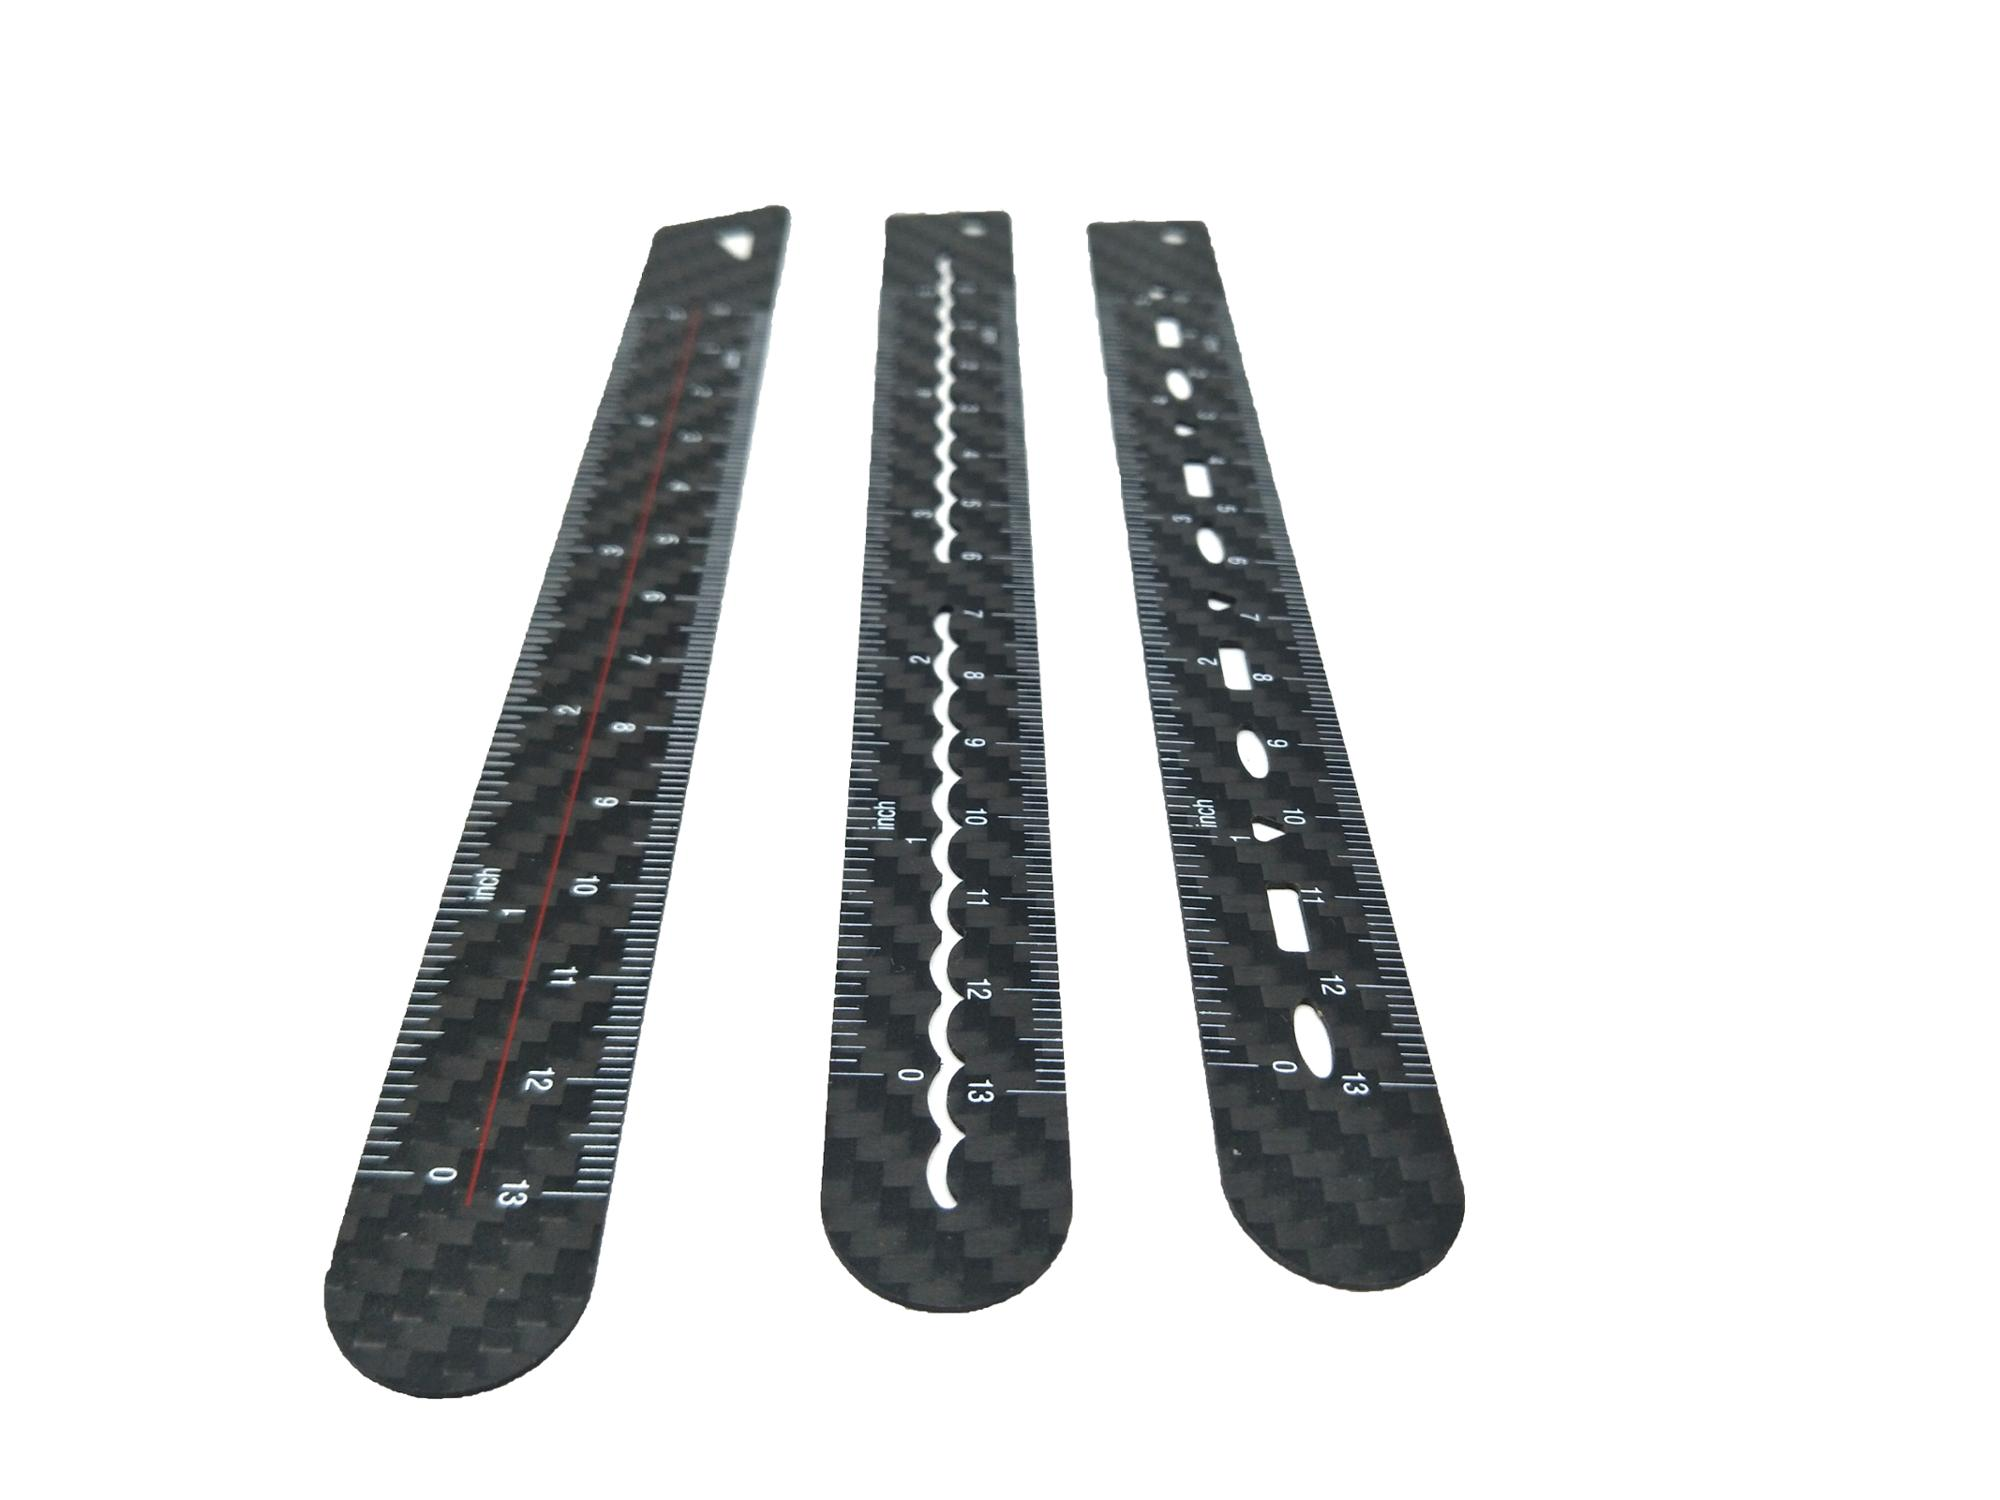 Customize high quality carbon fiber ruler for gifts